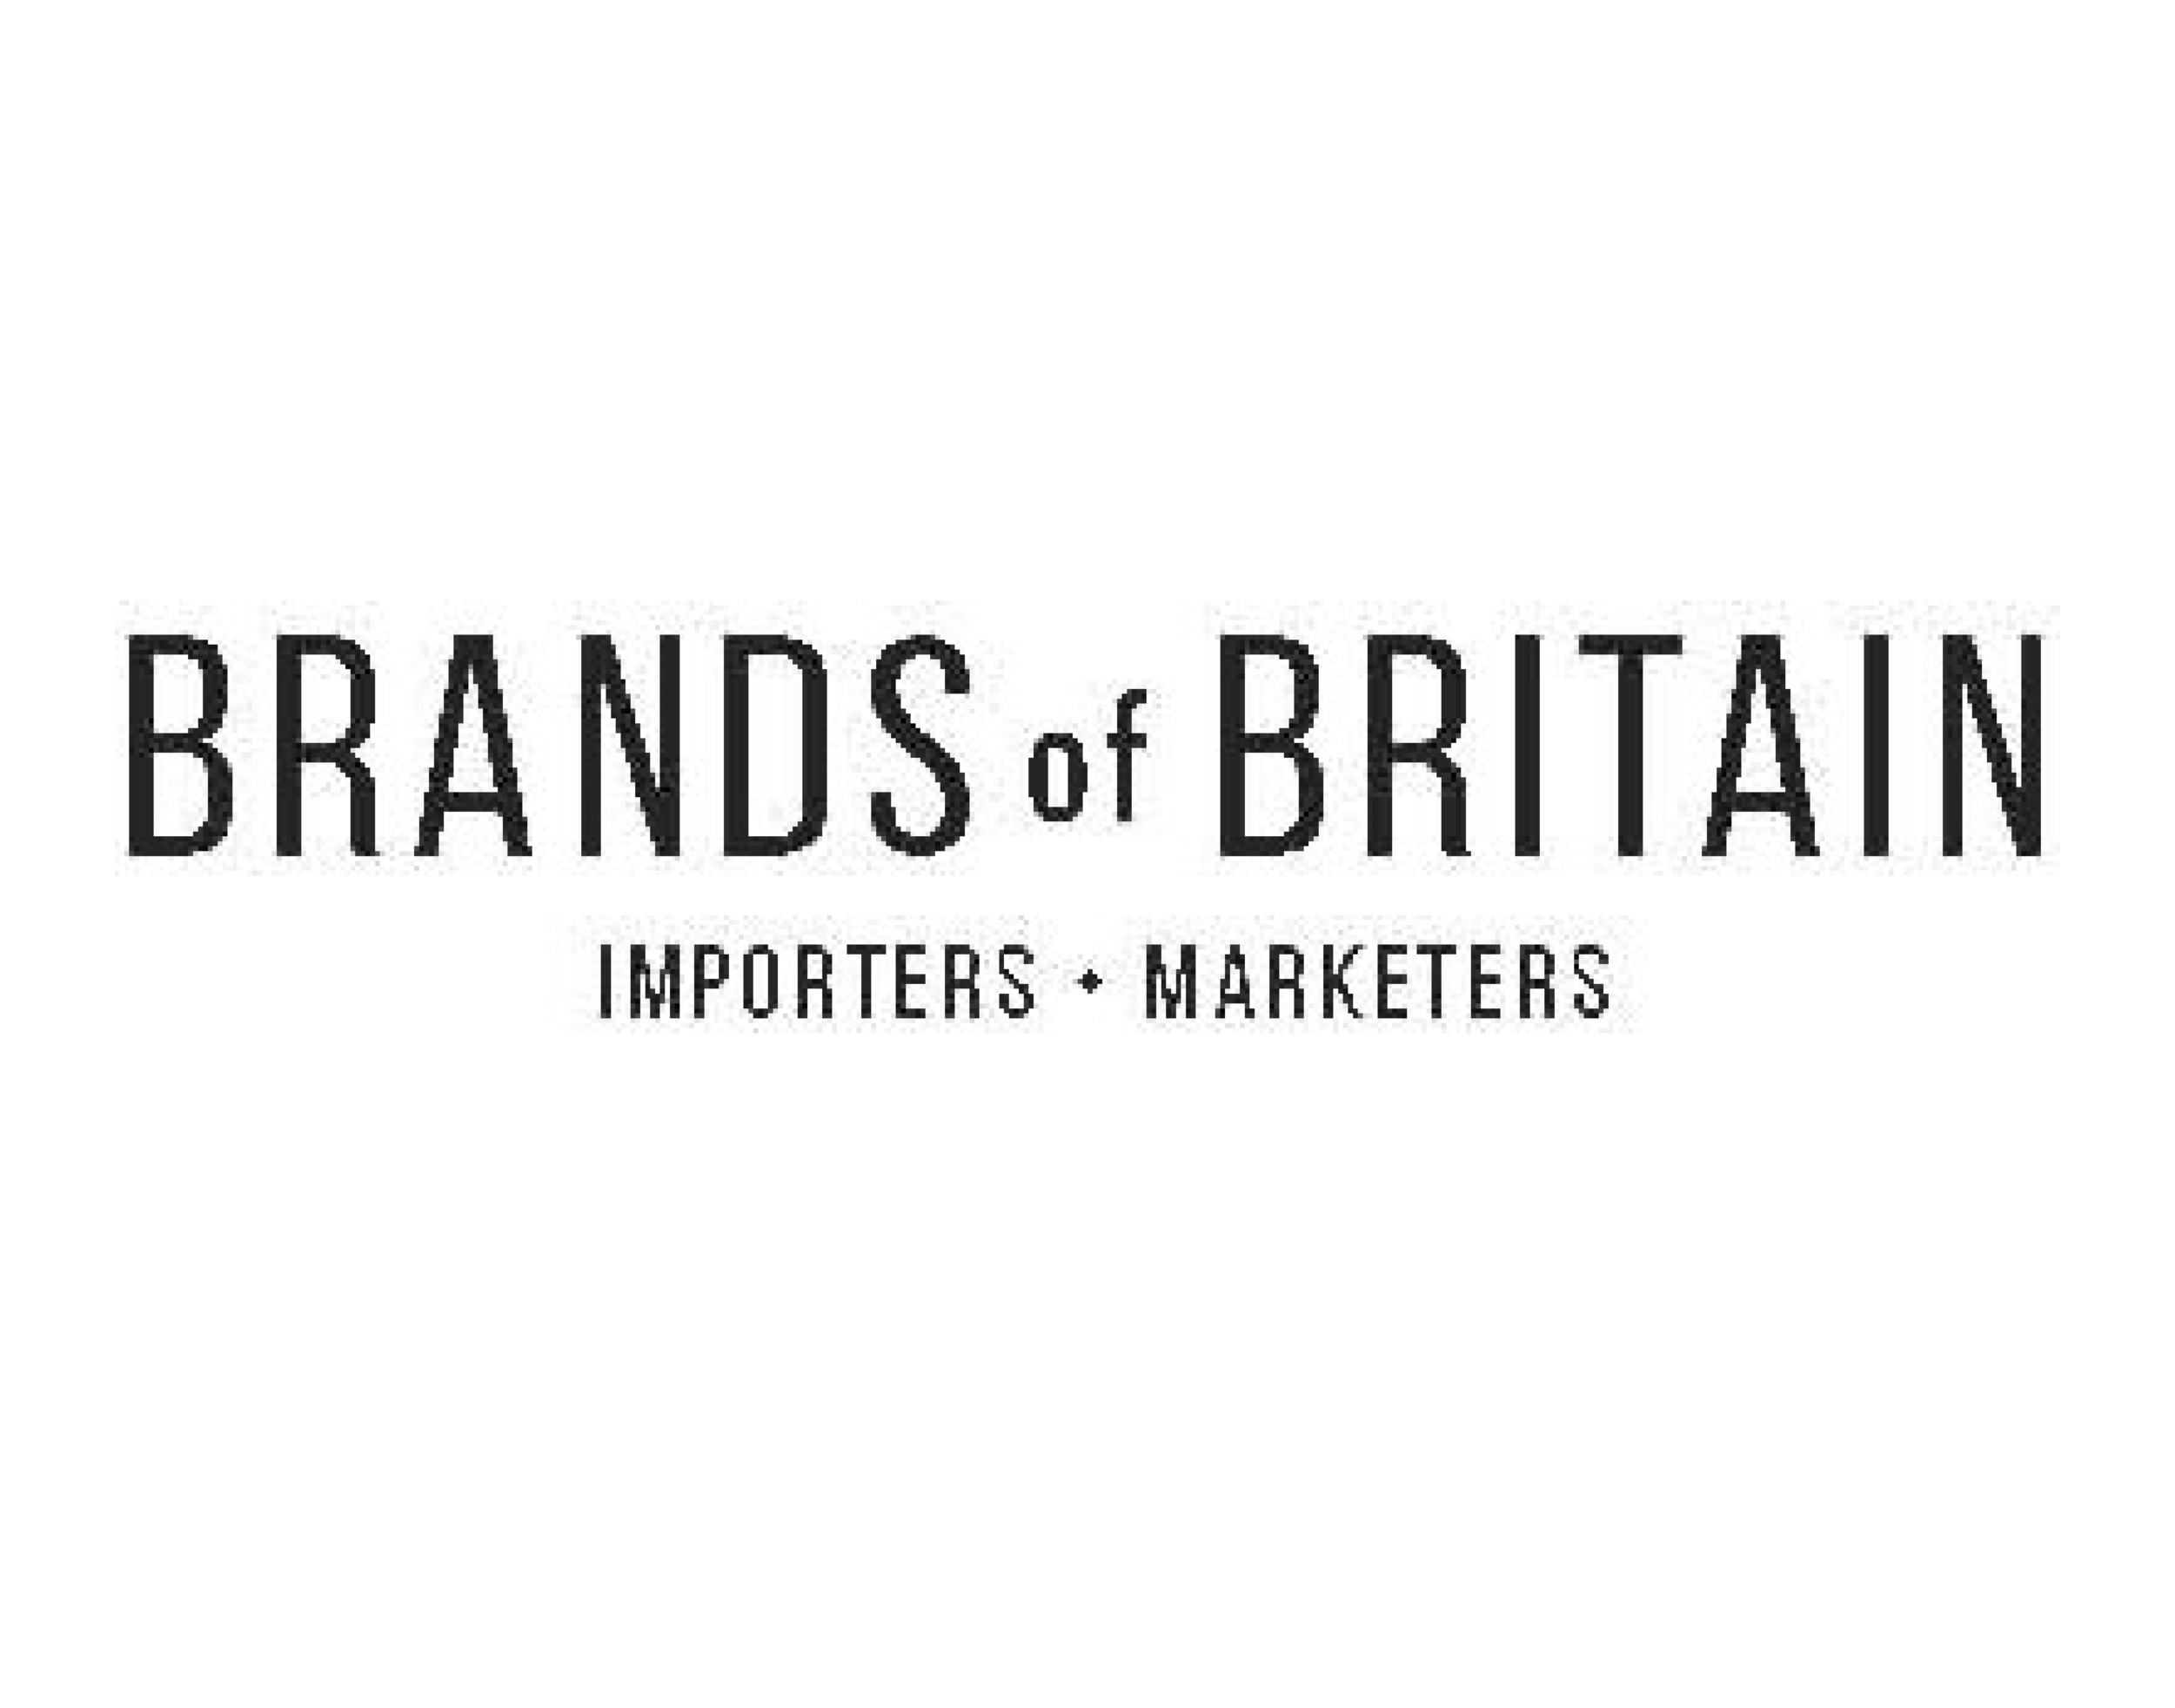 Brands of Britain logo. Links to Brands of Britain website.